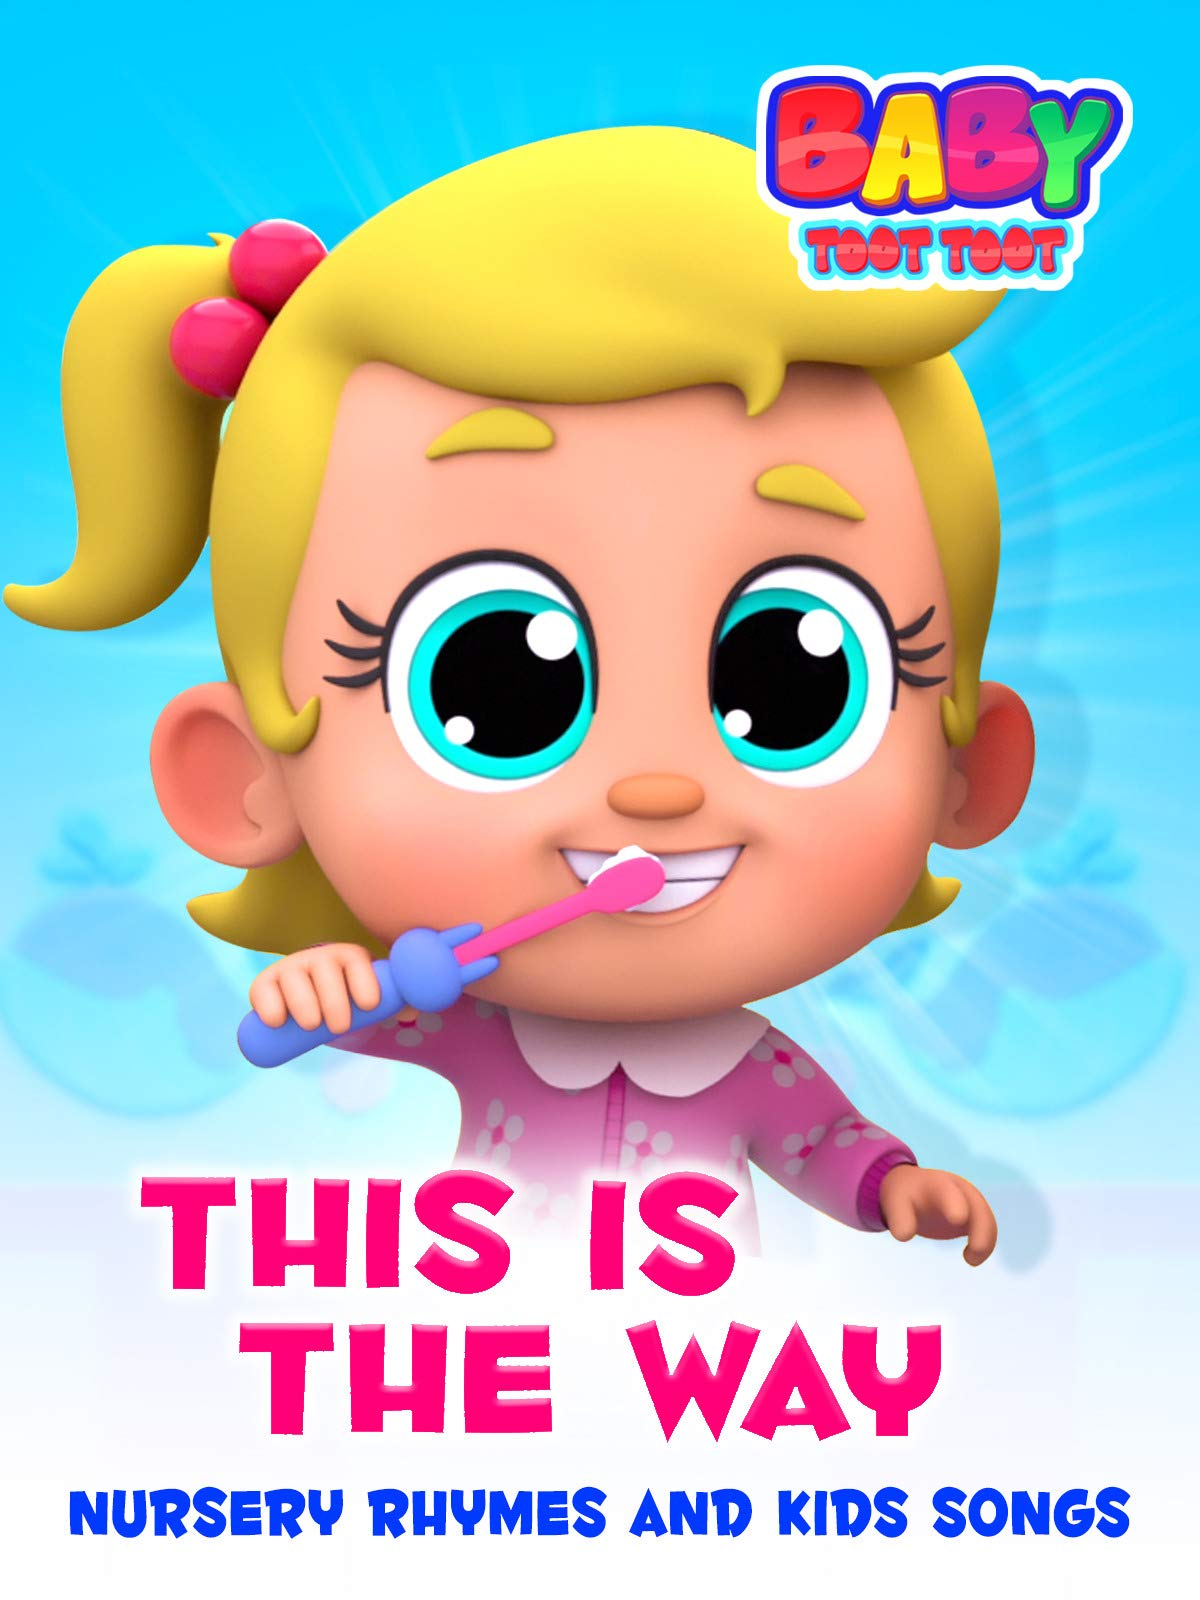 This is the Way Nursery Rhymes and Kids Songs - Baby Toot Toot